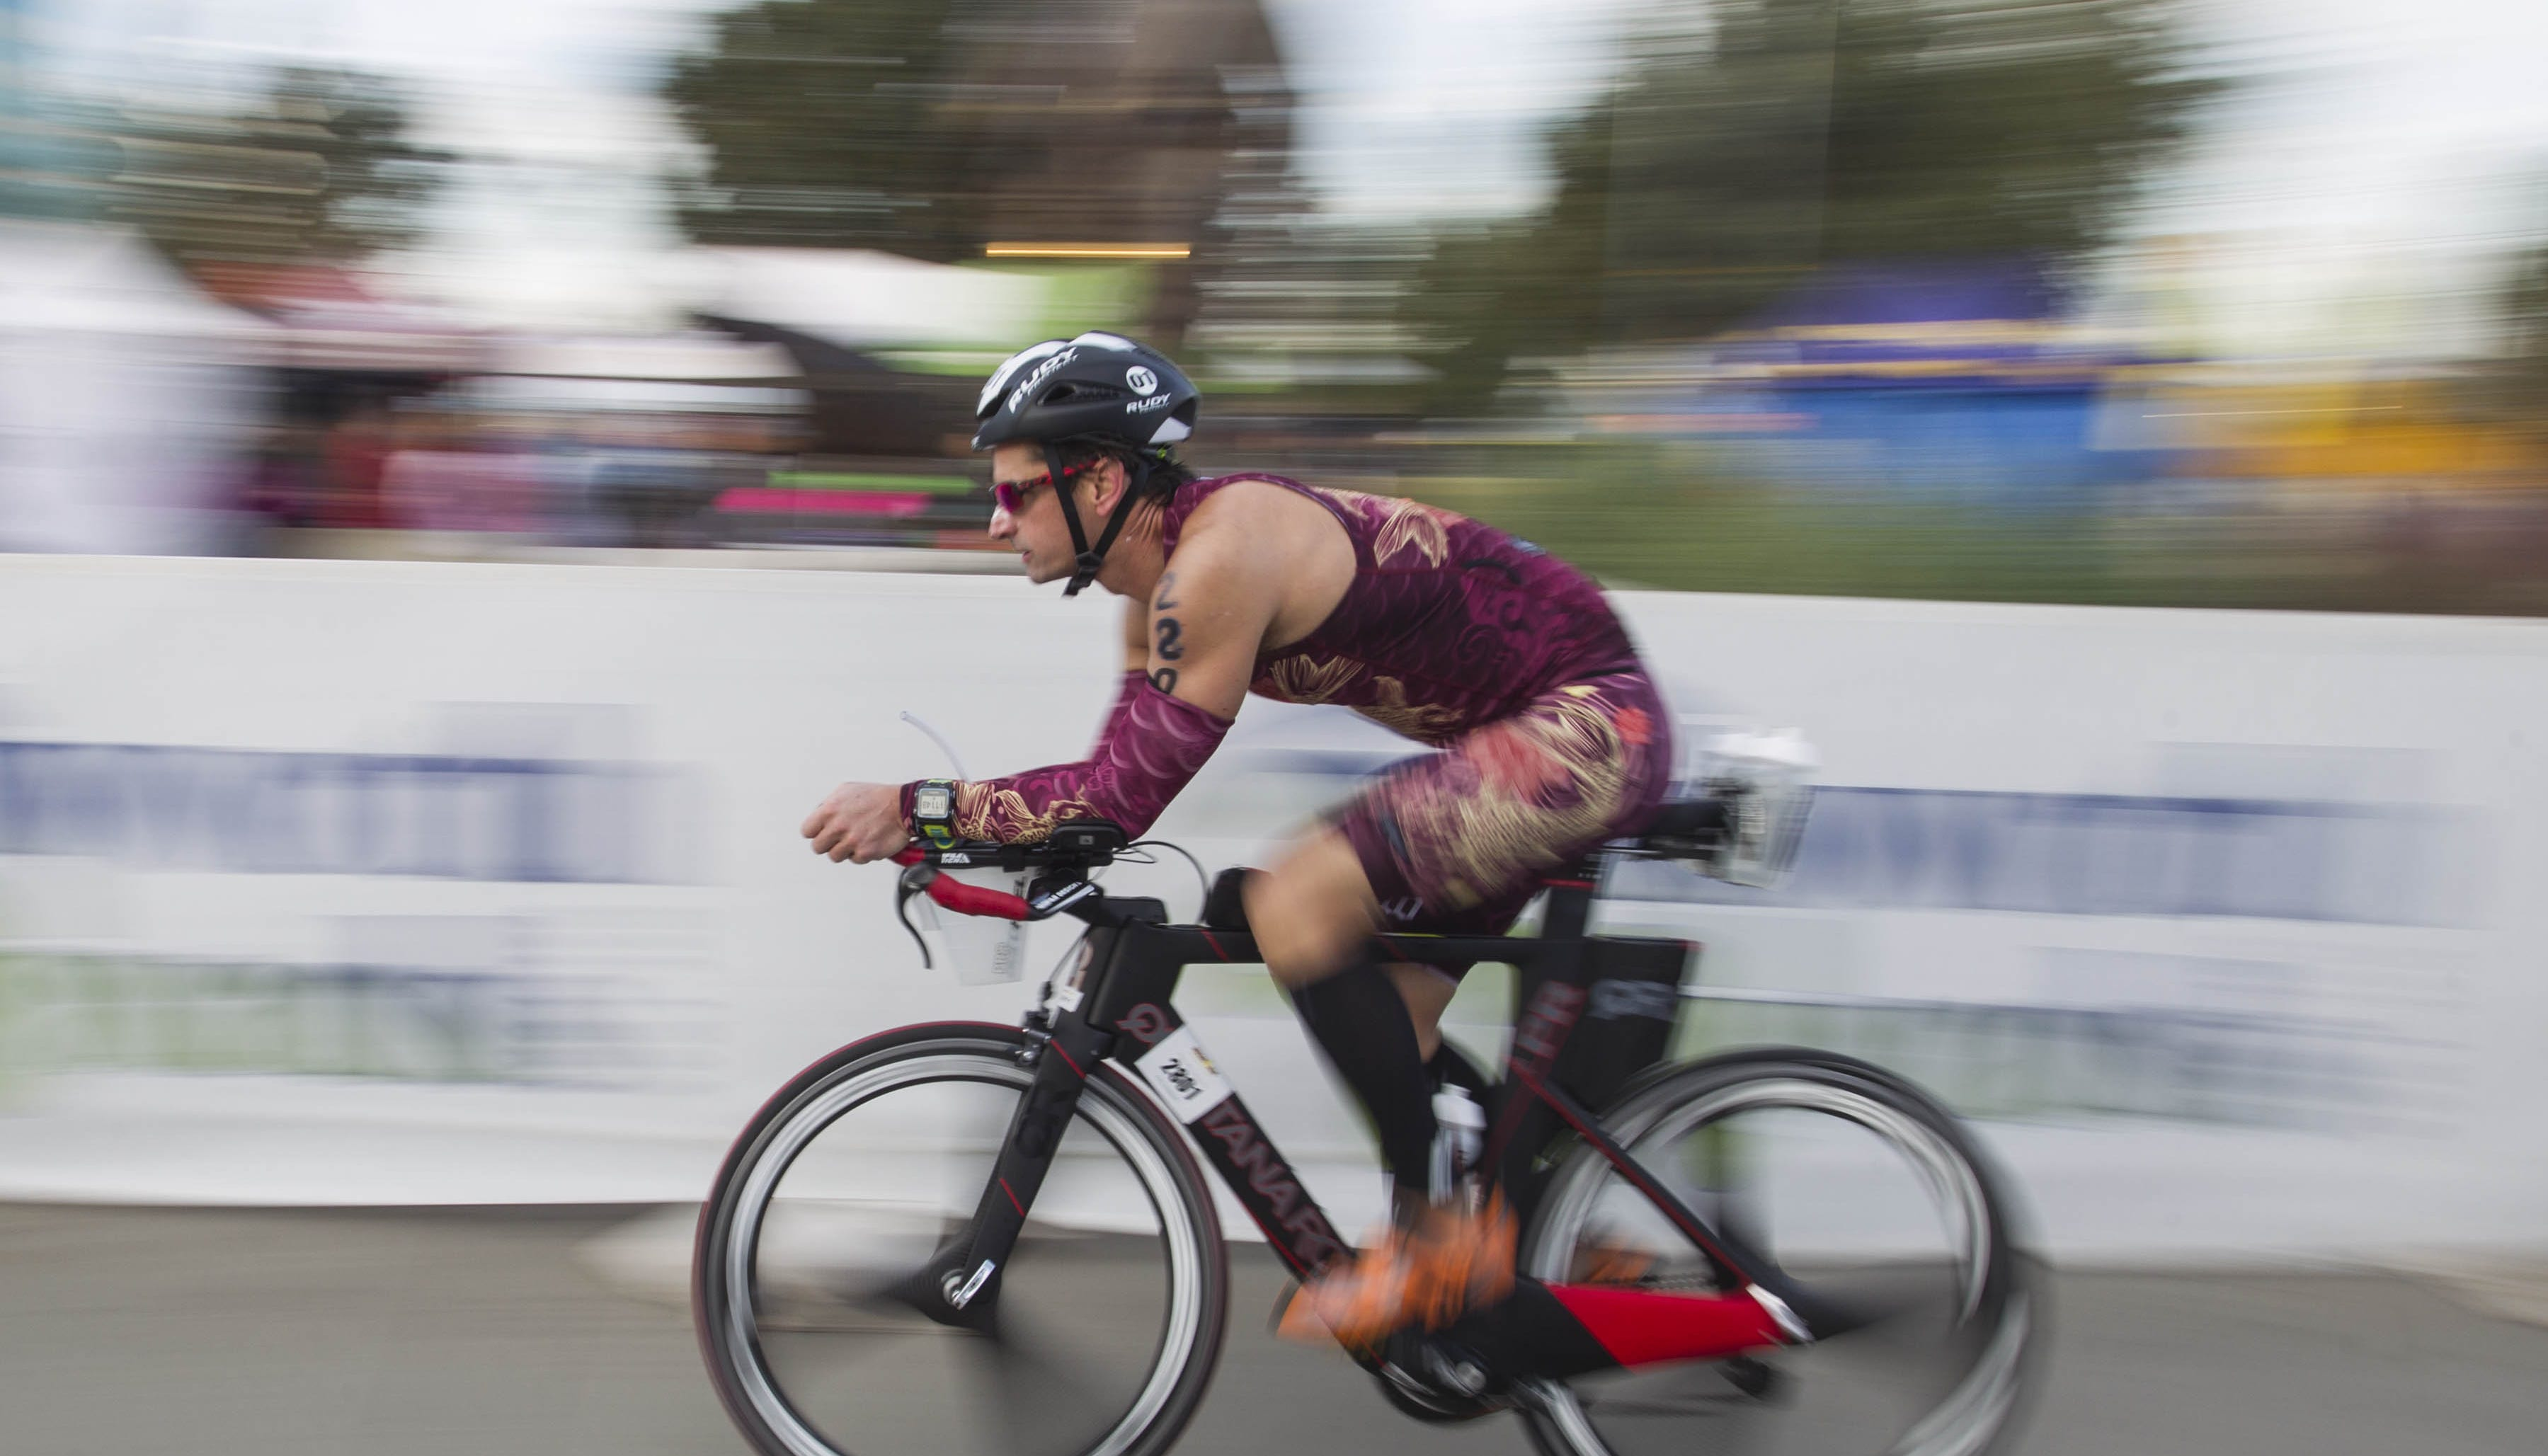 Ironman kicks off Sunday; get ready for traffic and detours